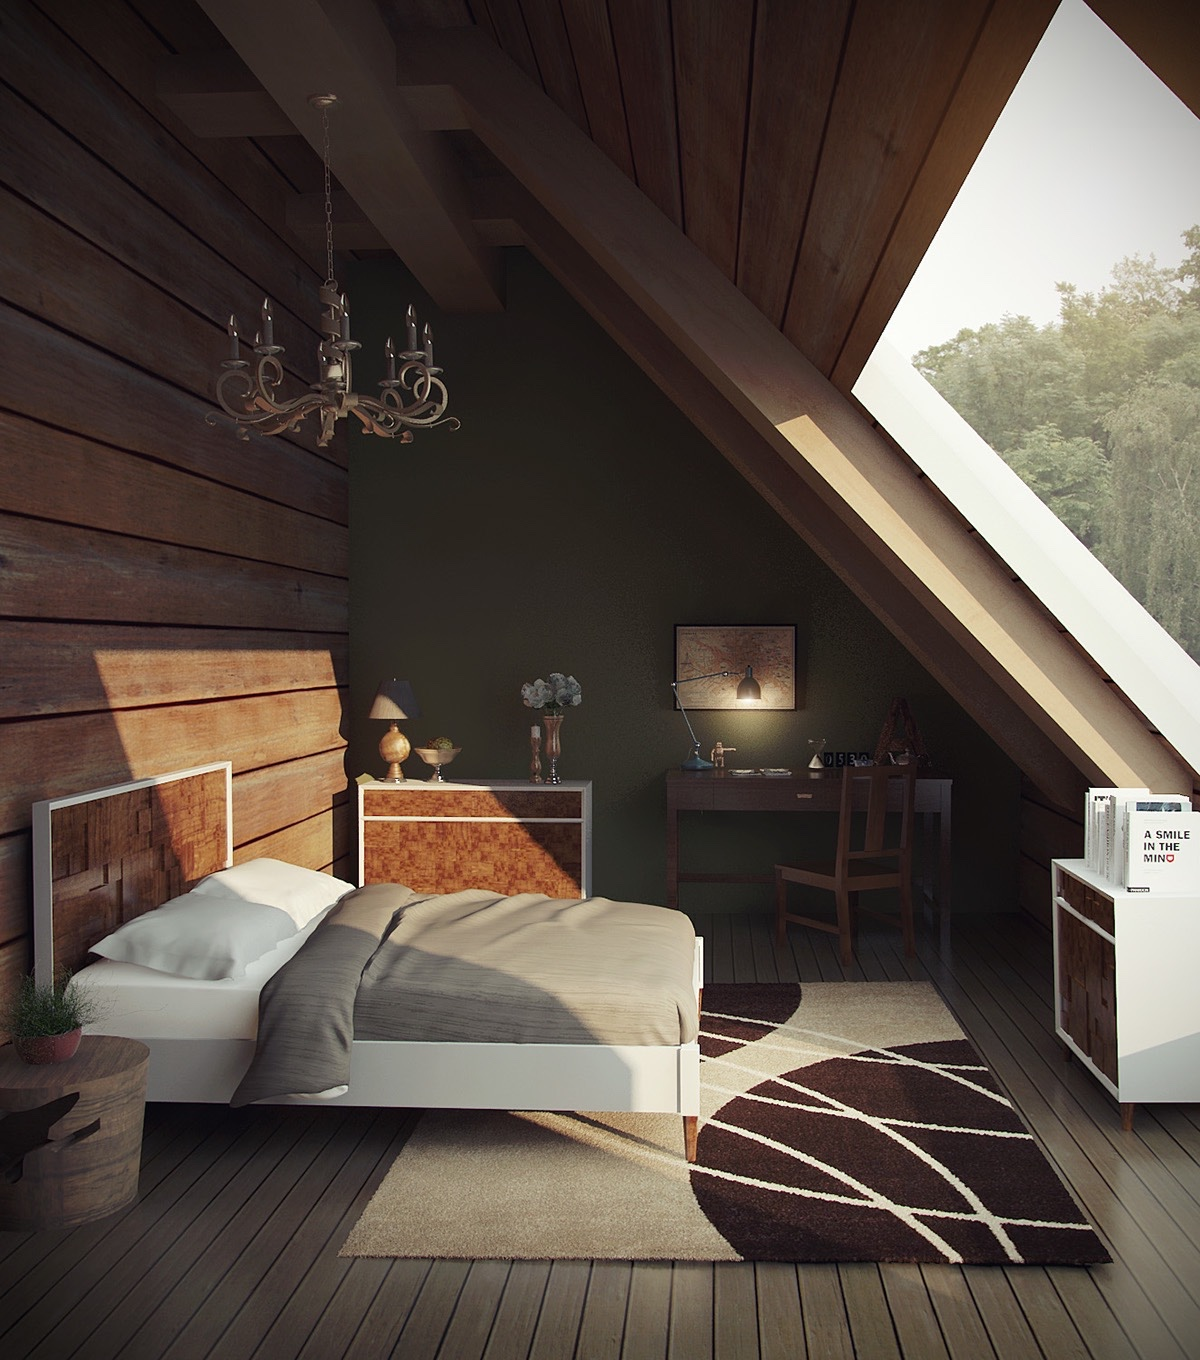 18 loft style bedroom designs ideas design trends premium psd vector downloads - Attic bedroom design ideas with wooden flooring ...